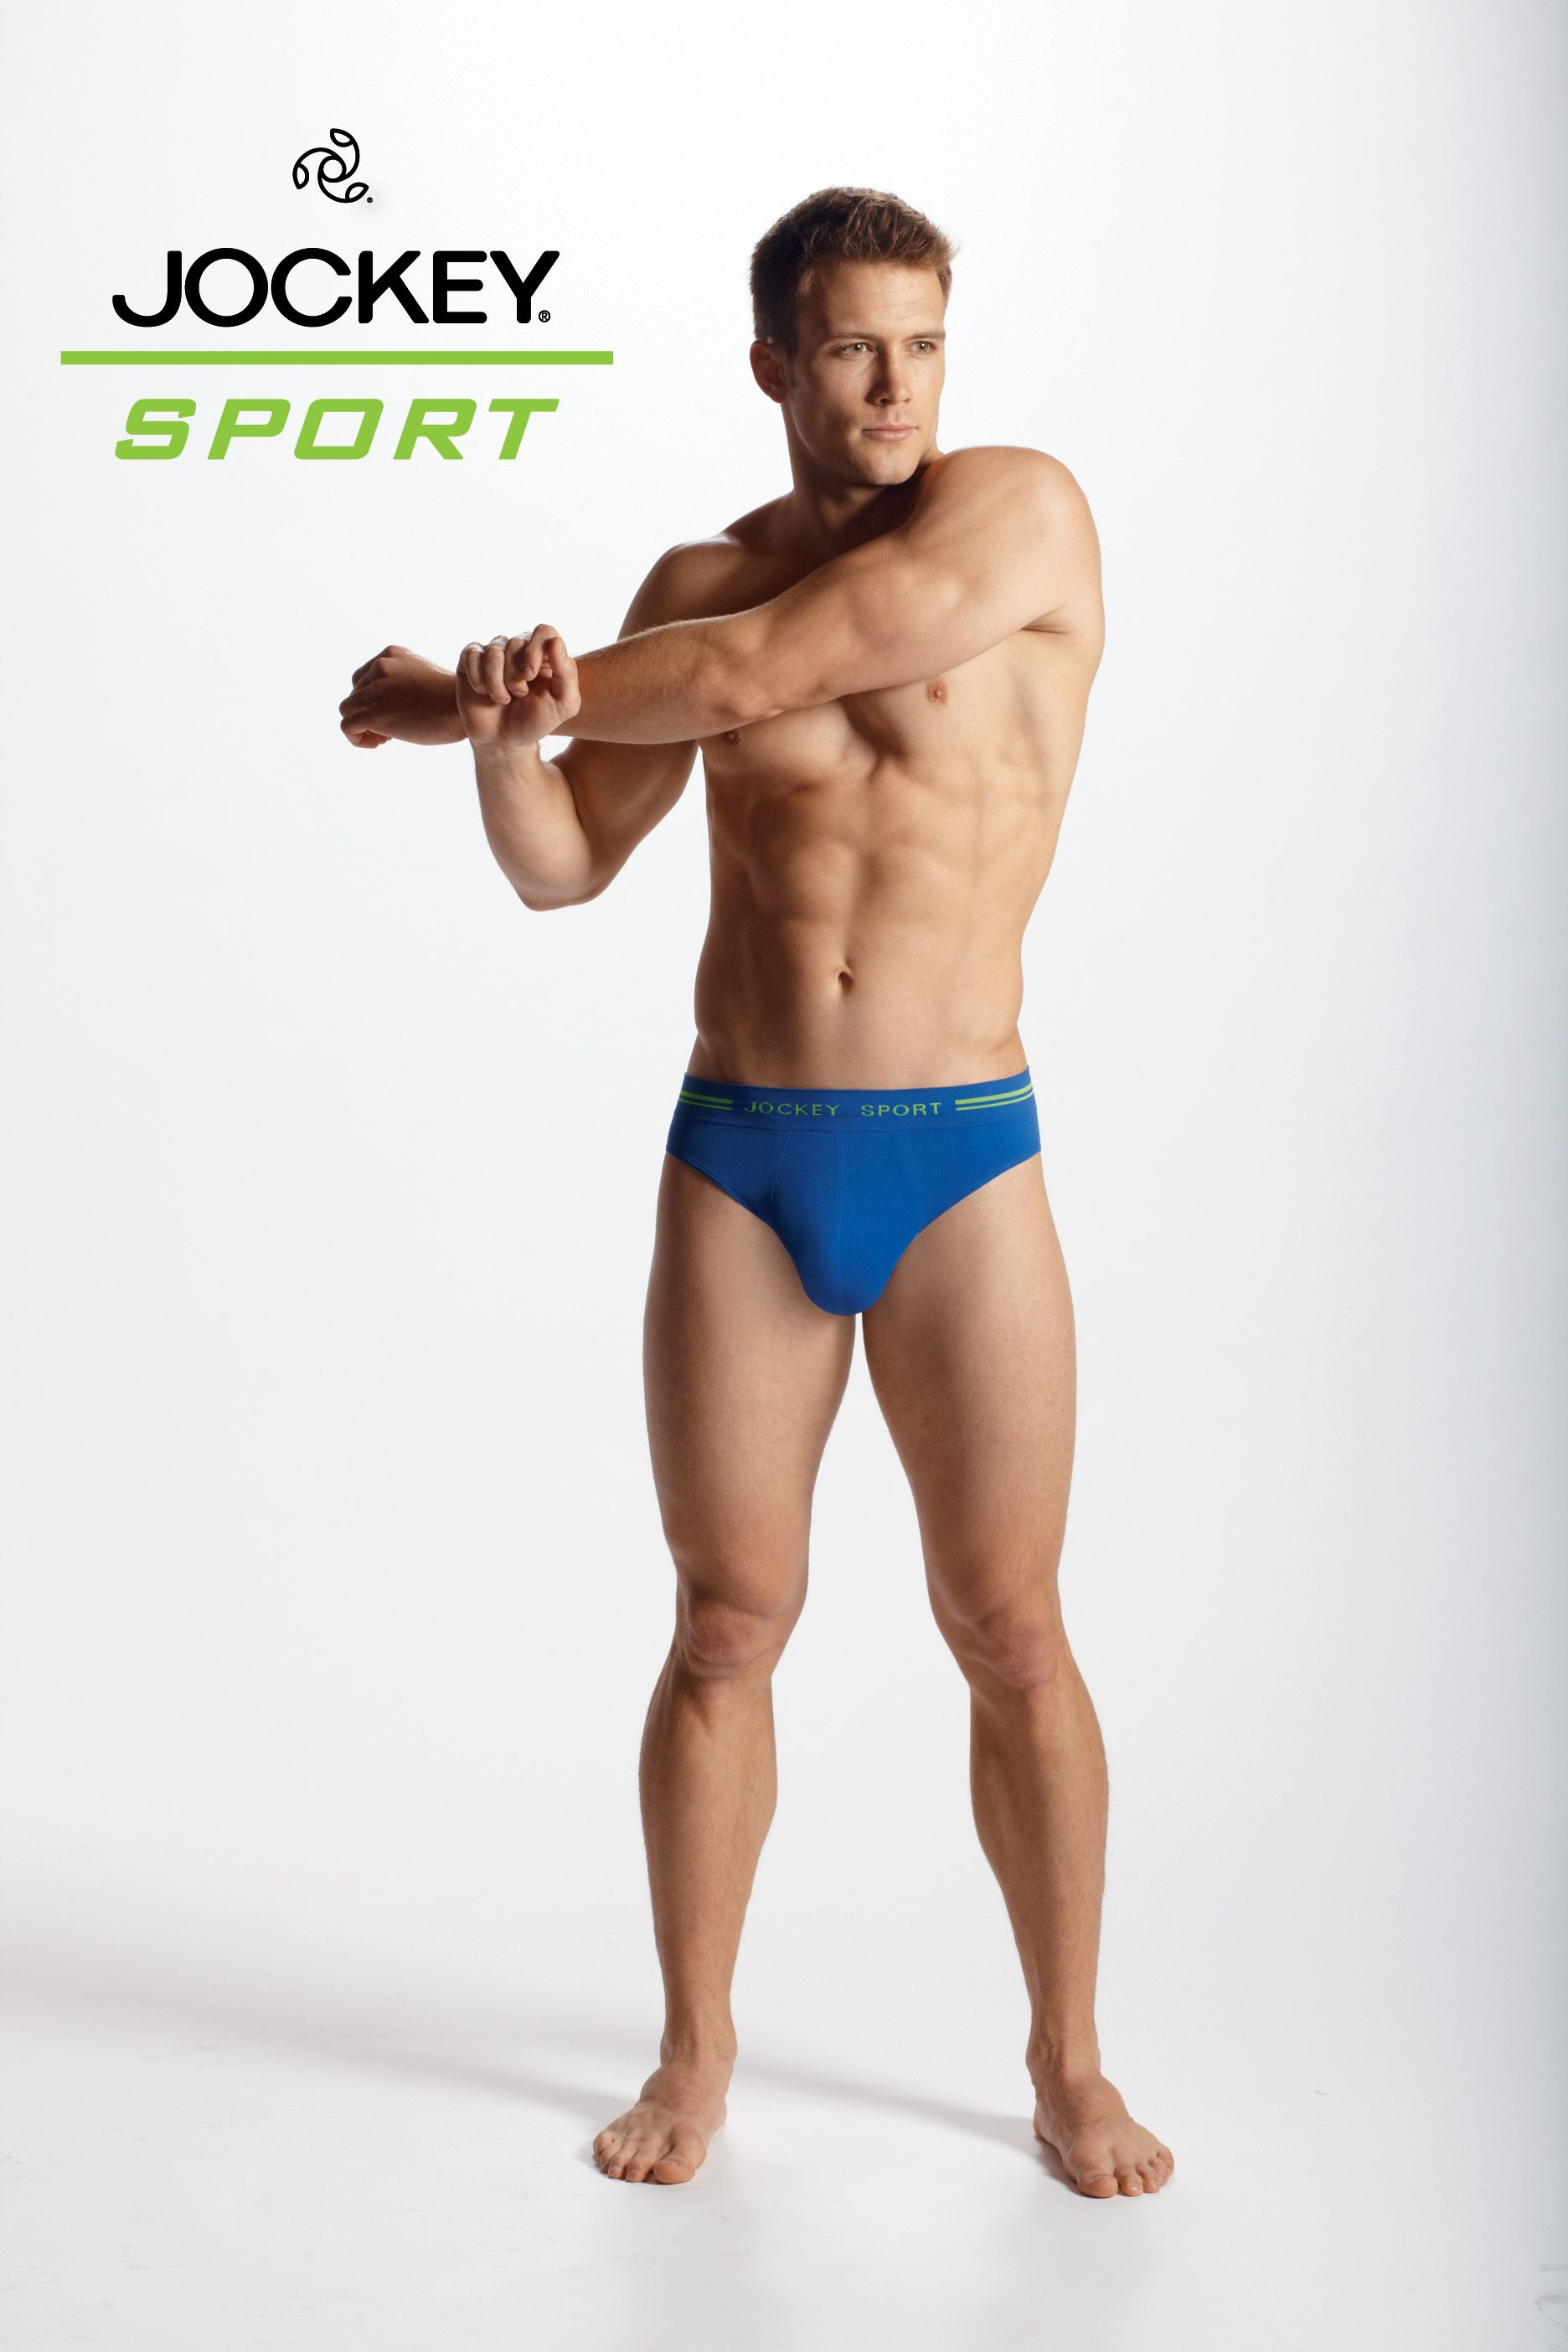 Jockey brings exclusive Sport collection for You!